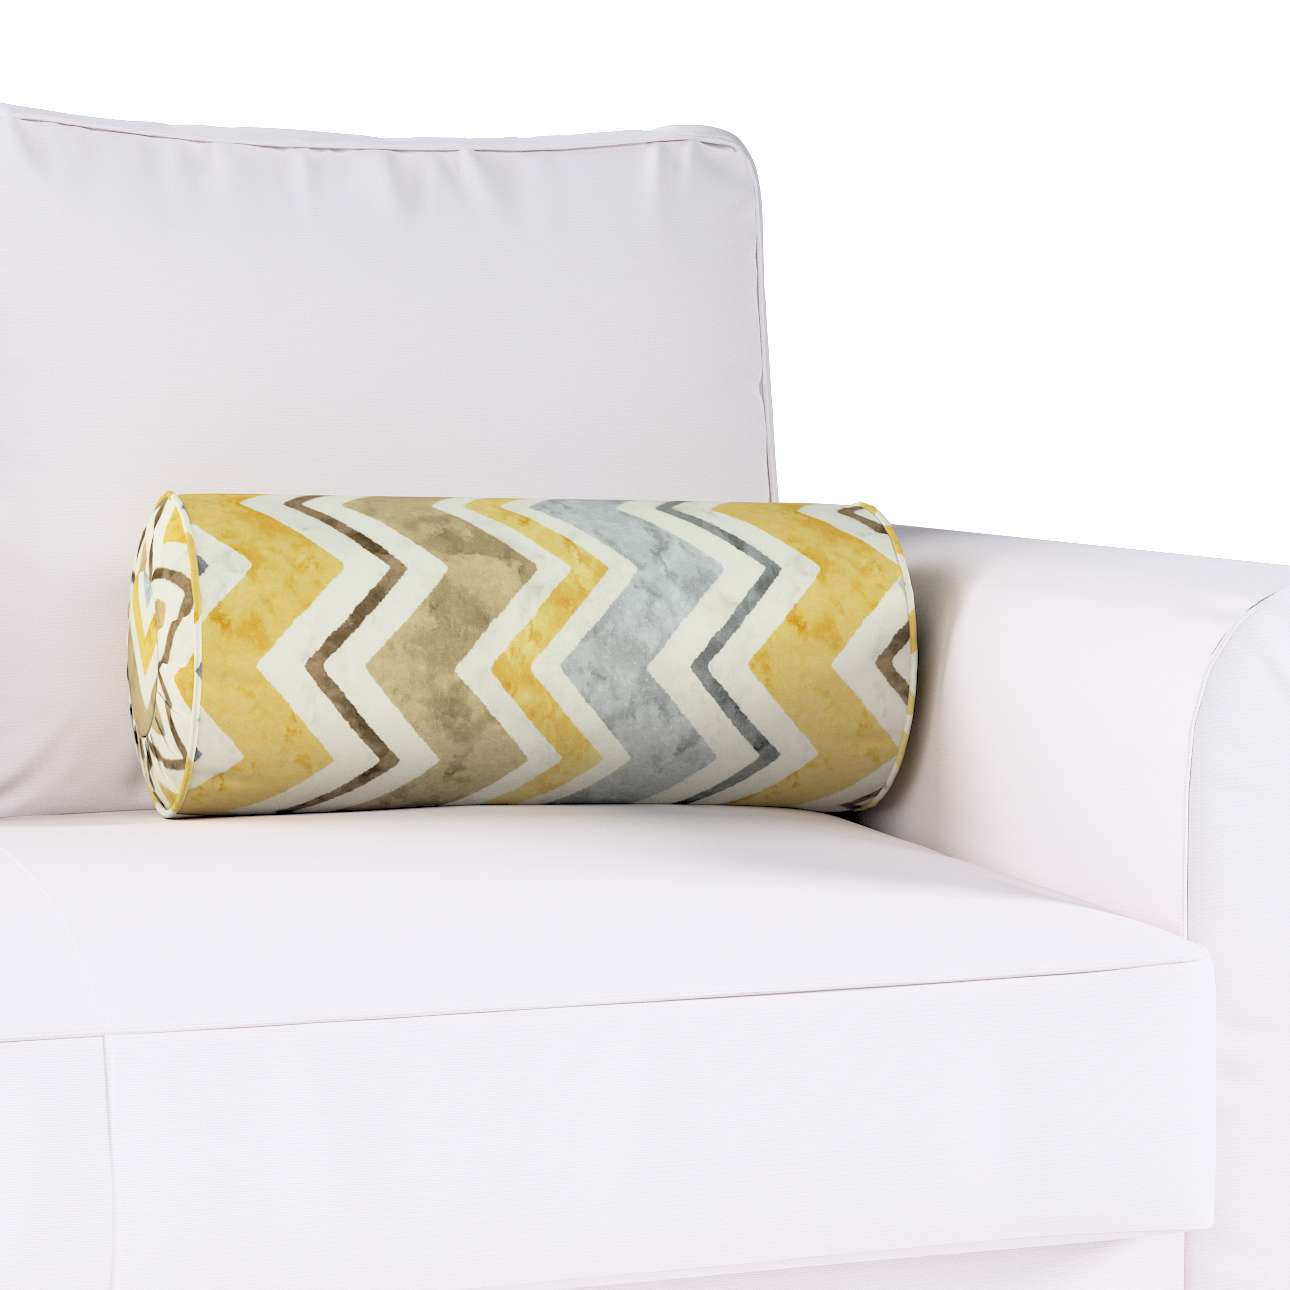 Bolster cushion with pleats in collection Acapulco, fabric: 141-39